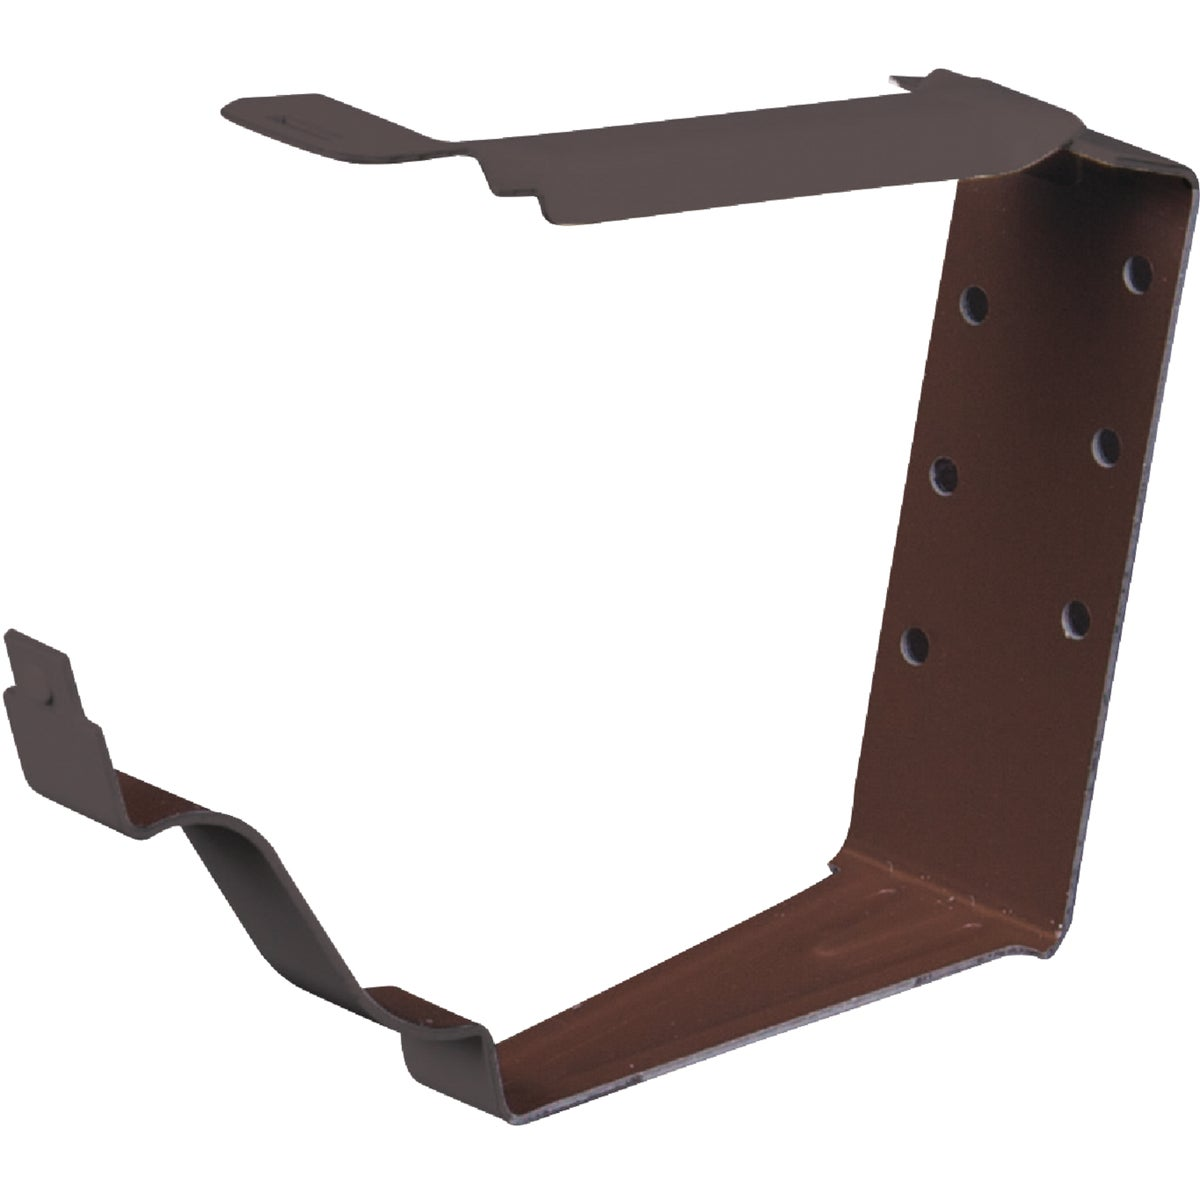 BRN SNAP LOK BRACKET - 2502419 by Amerimax Home Prod